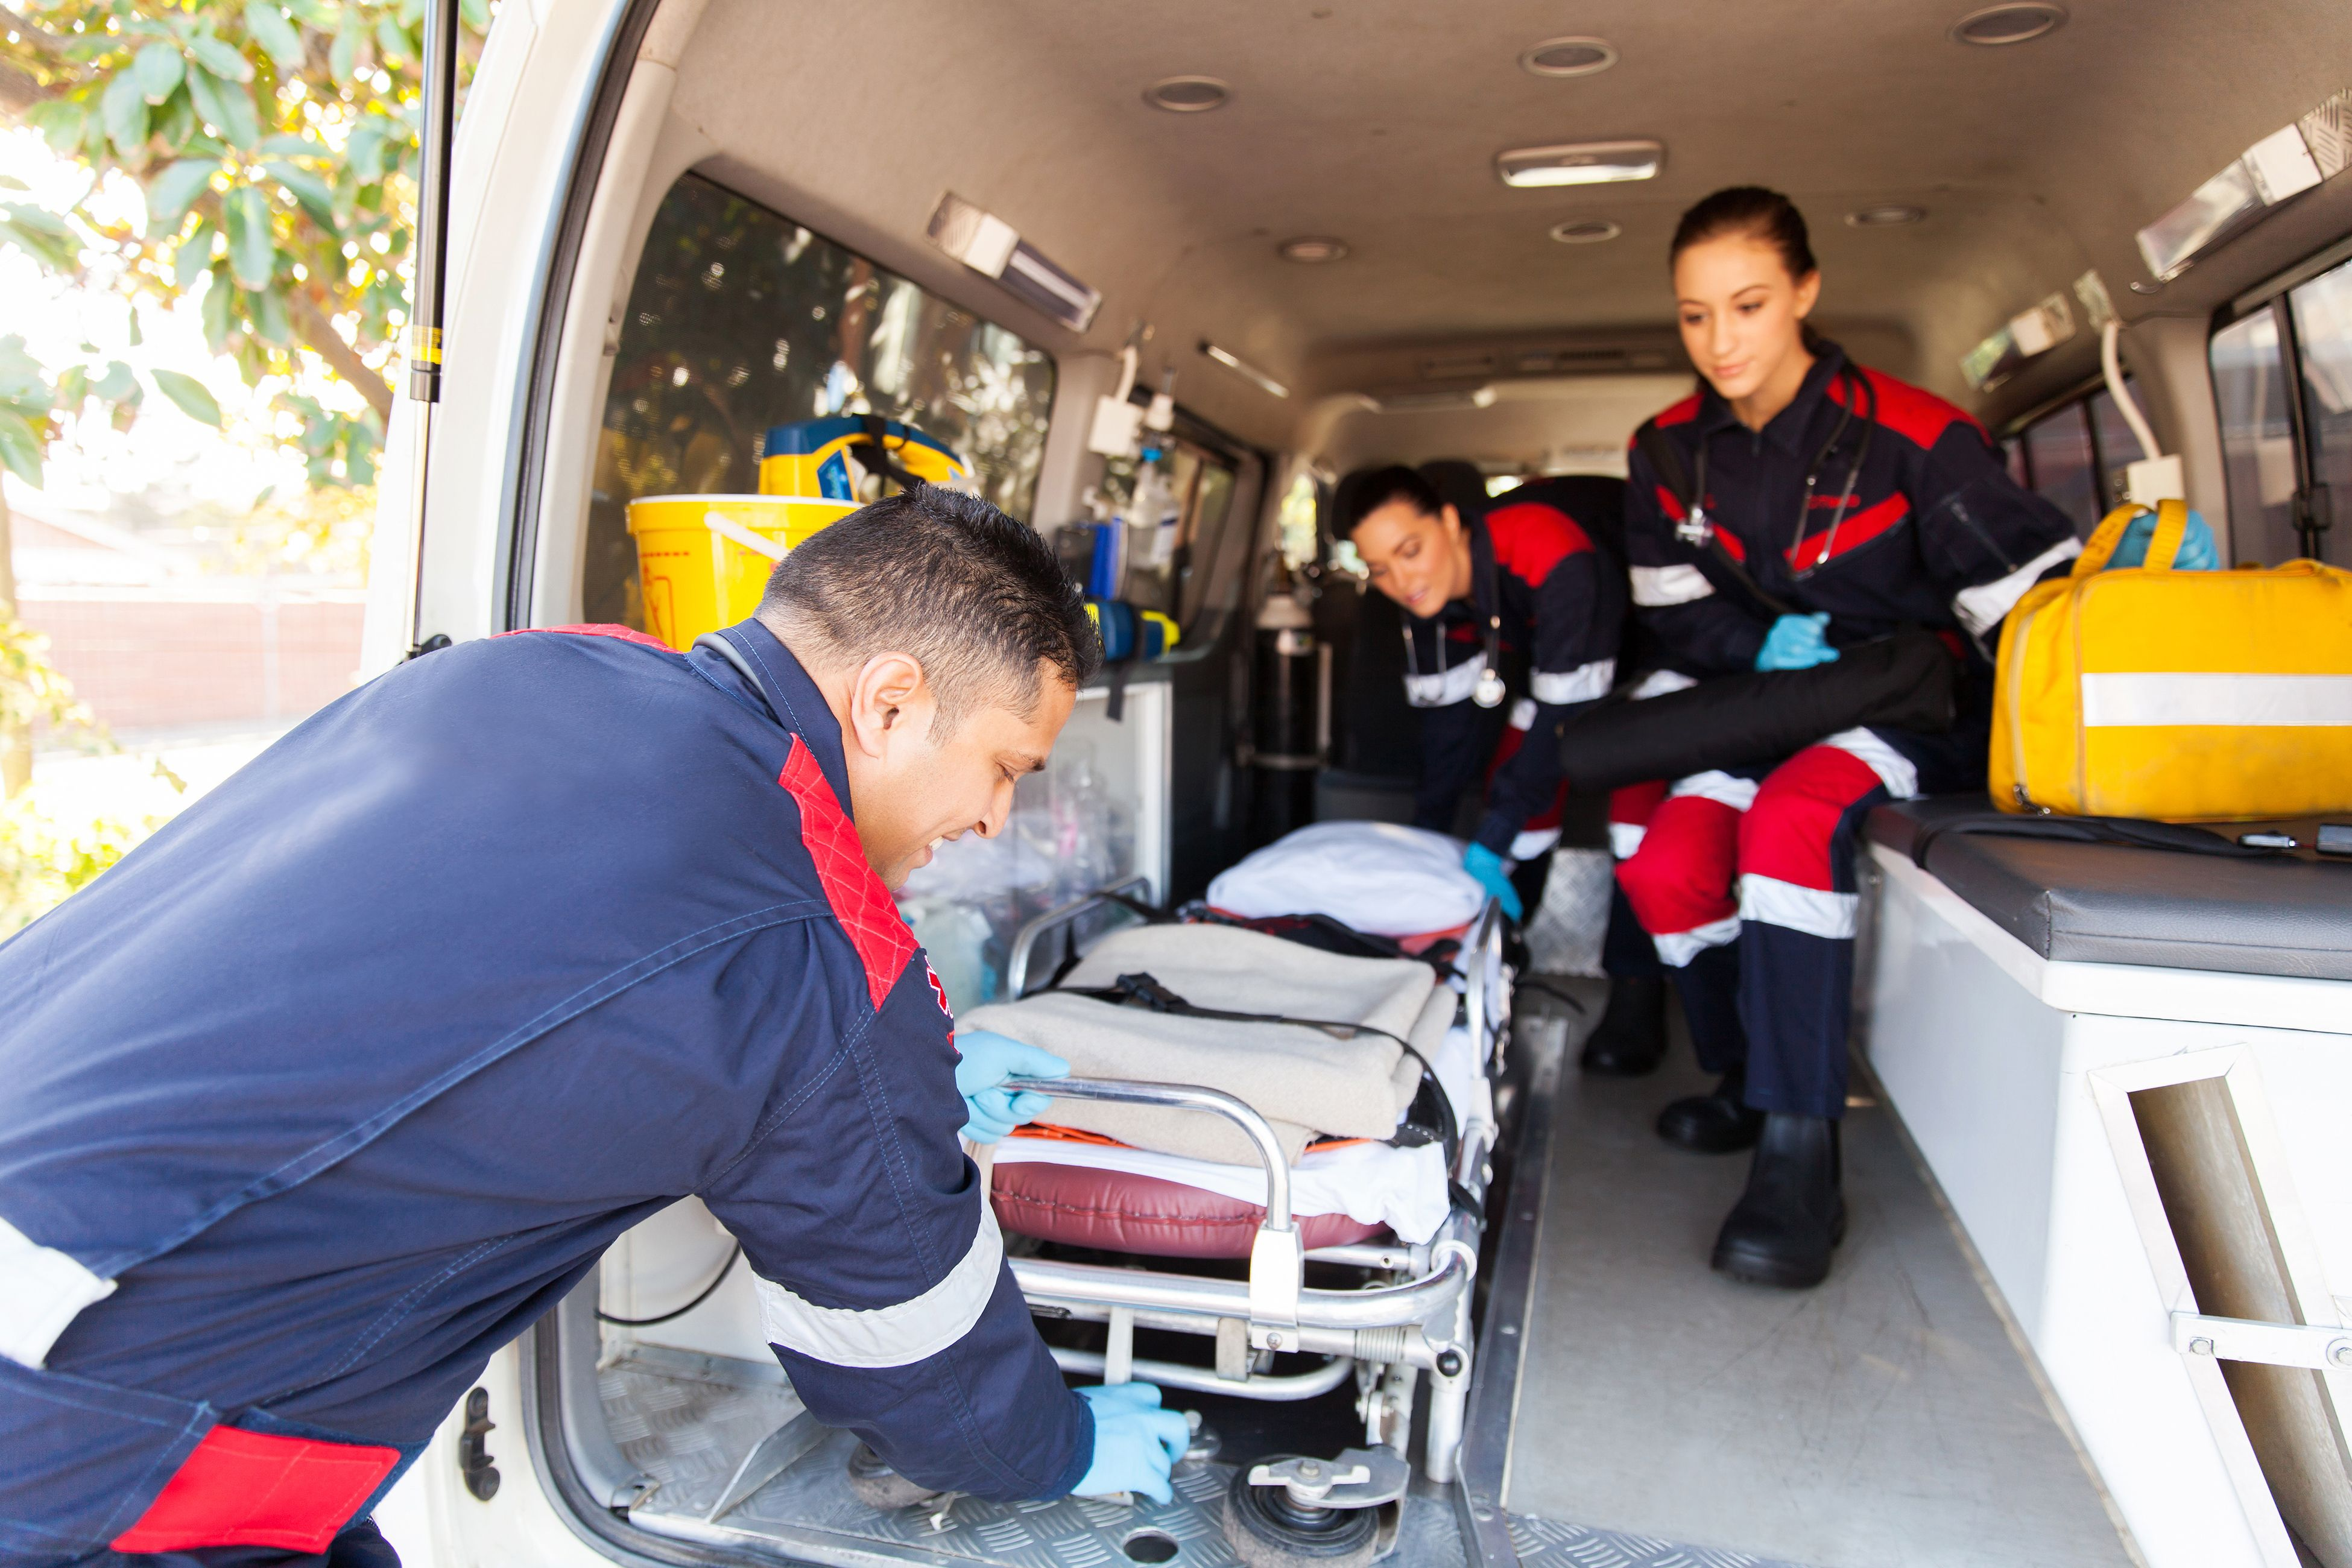 Experience as paramedic could lead to canadian